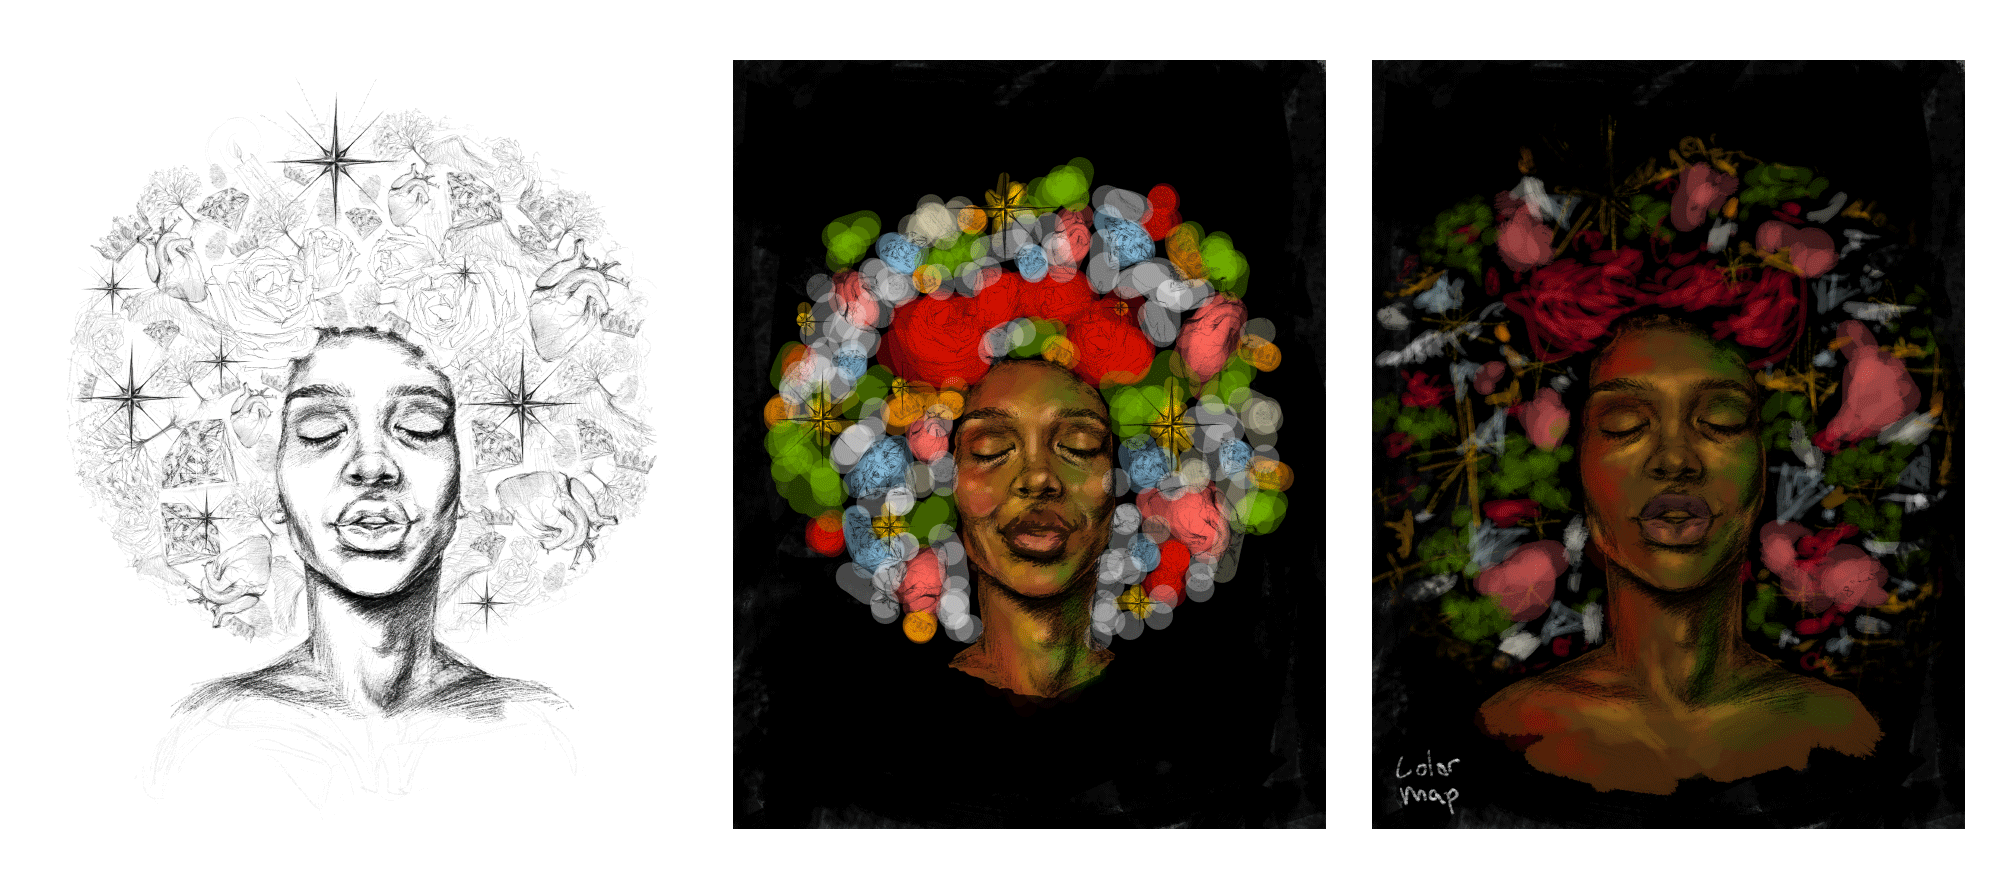 Sketch and digital iterations of Black woman with icons forming and afro